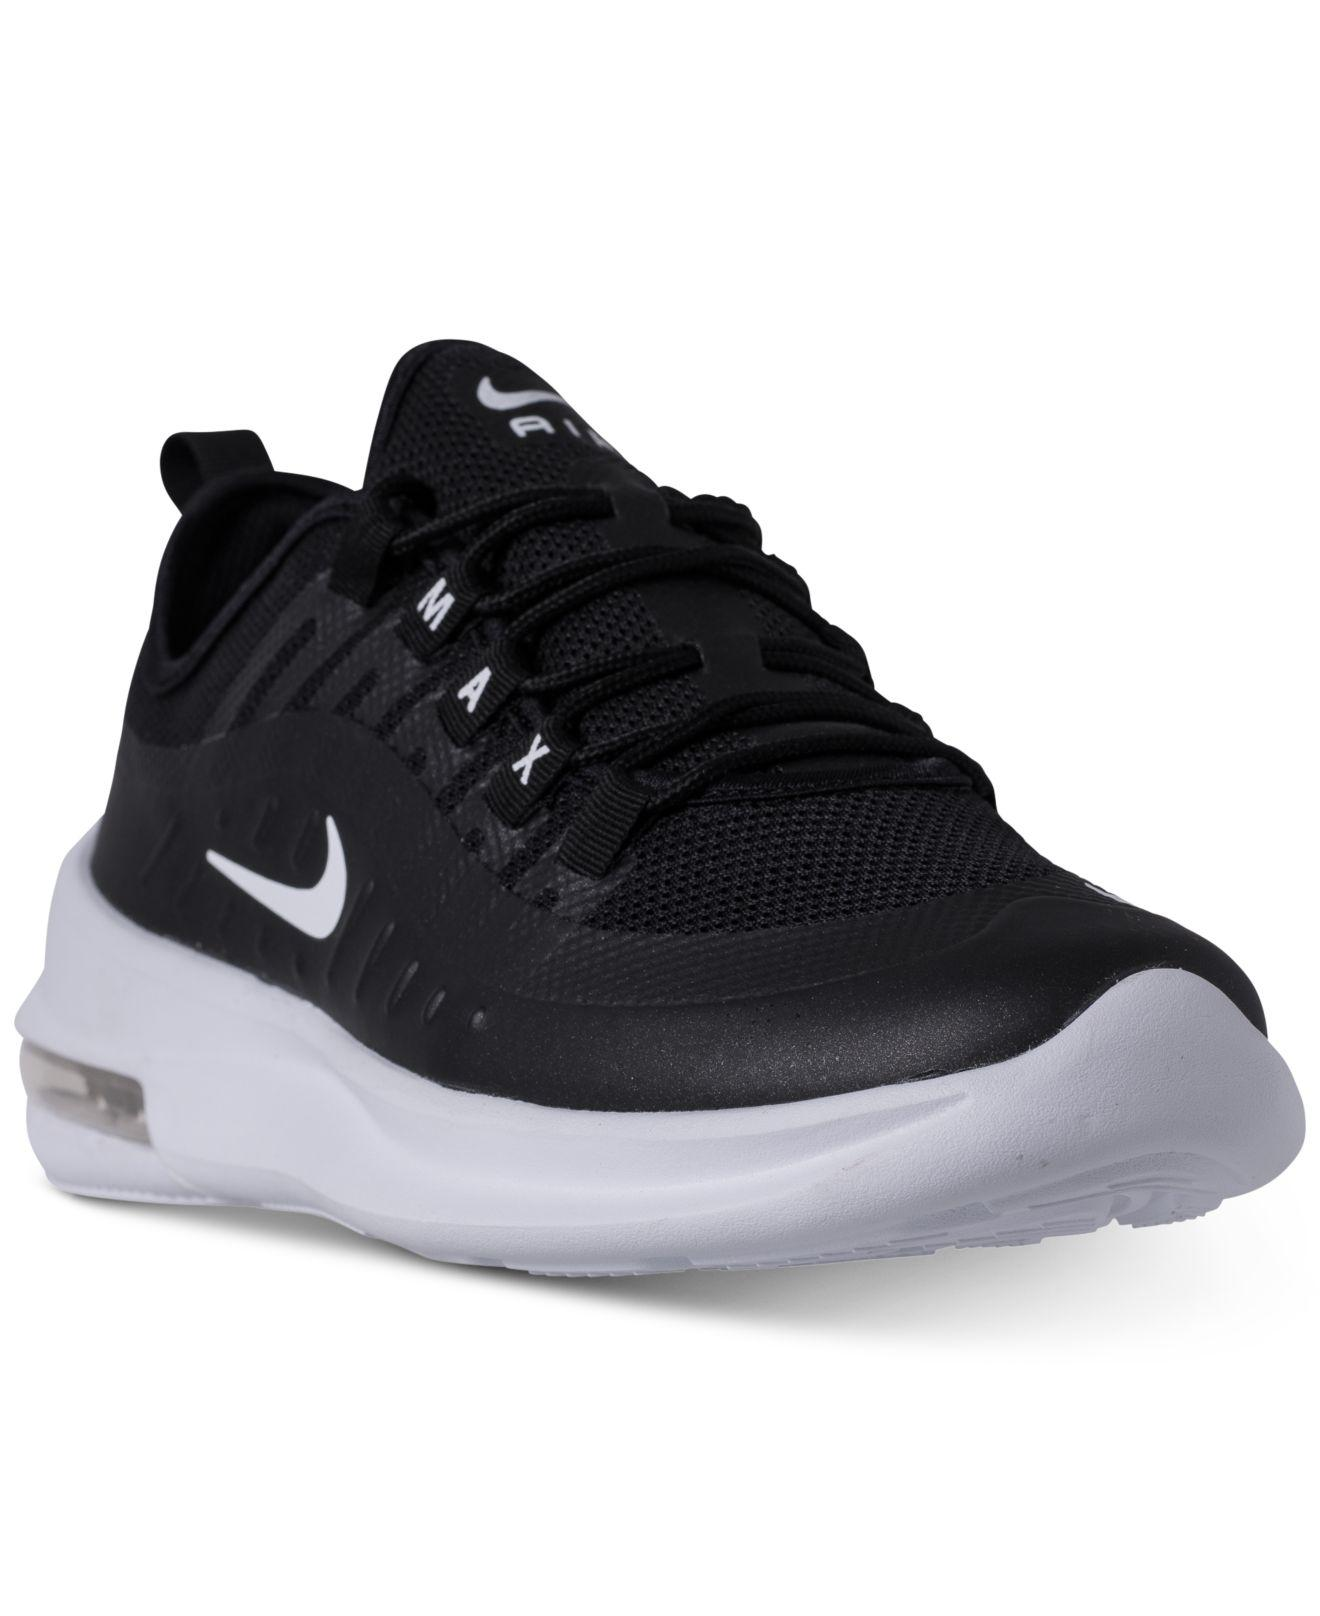 Lyst - Nike Air Max Axis Men s Shoe in Black for Men - Save 1% c15787a219